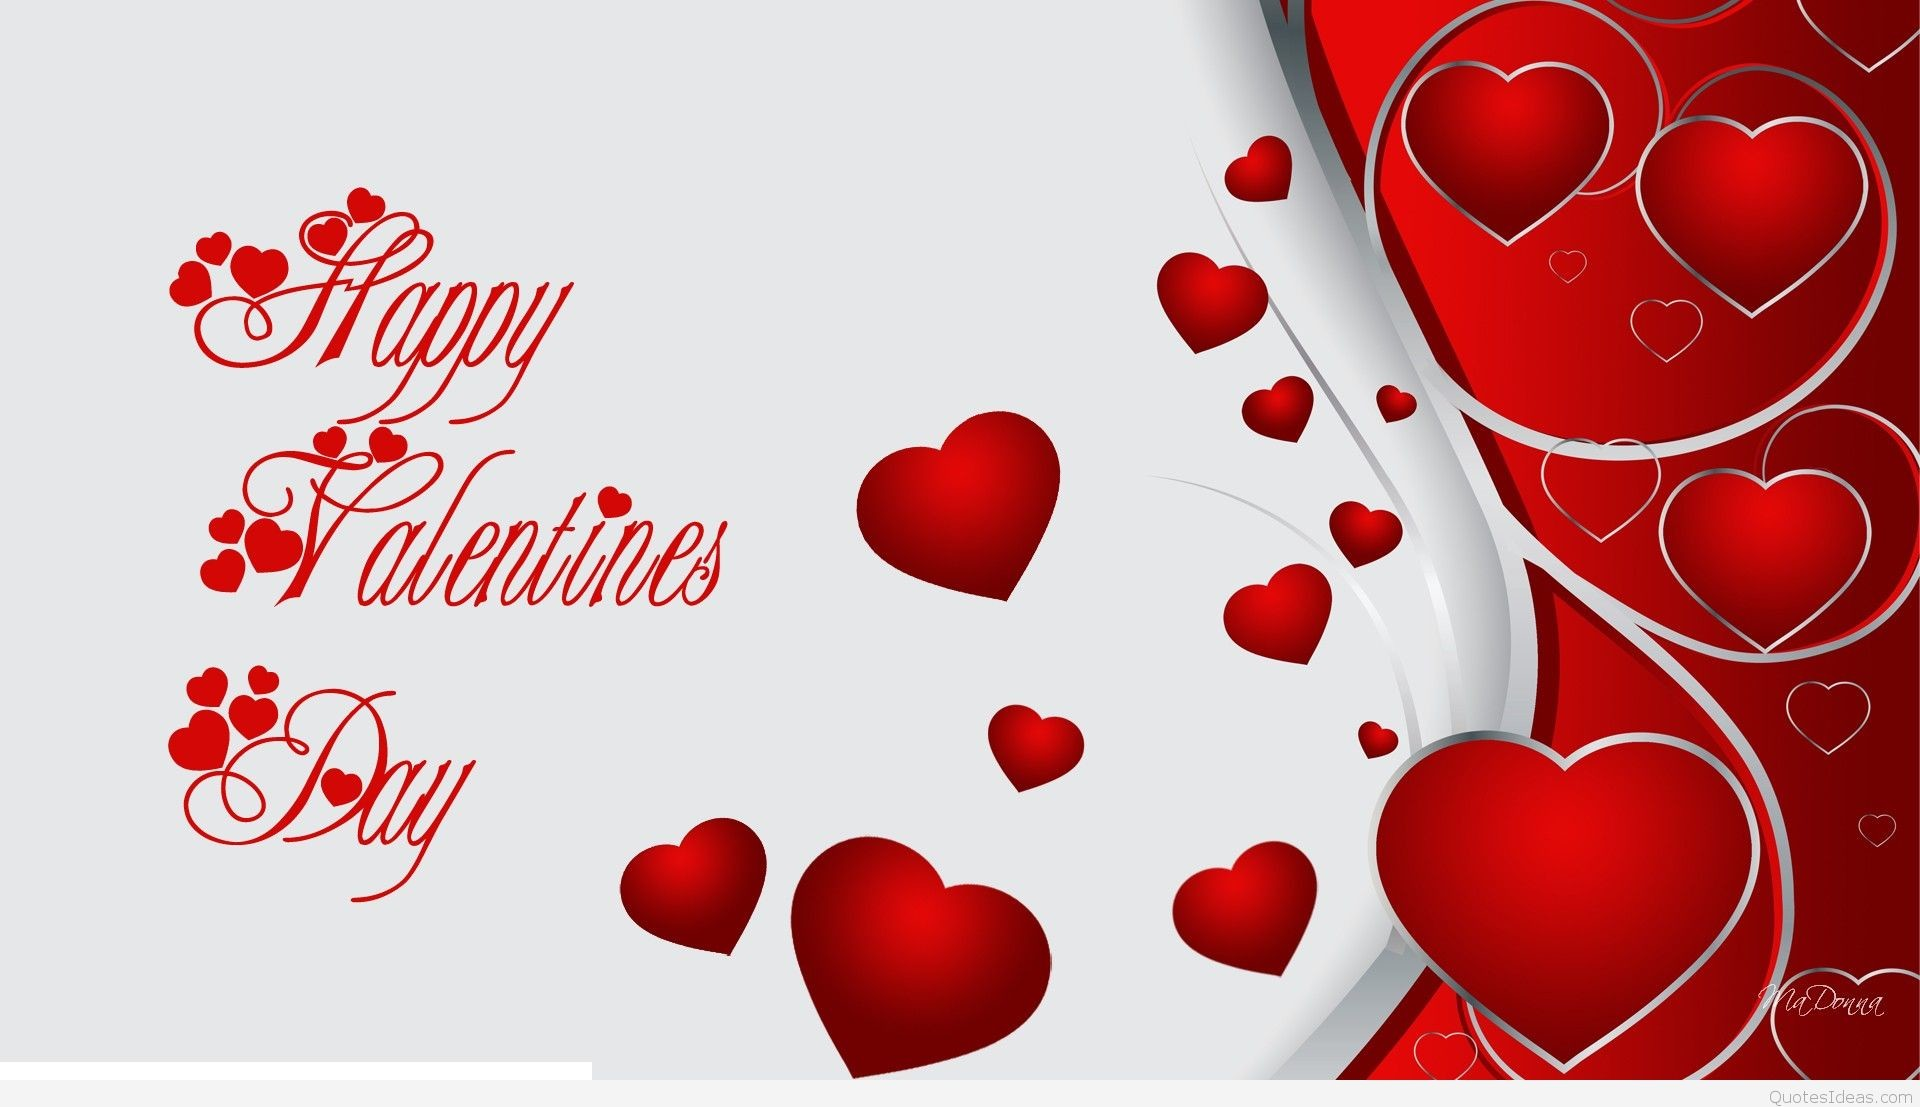 1920x1107 happy-valentine-day-HD-Wallpapers-for-pc2. f20c77c7dc5daf9fa5d4a0b939d04520